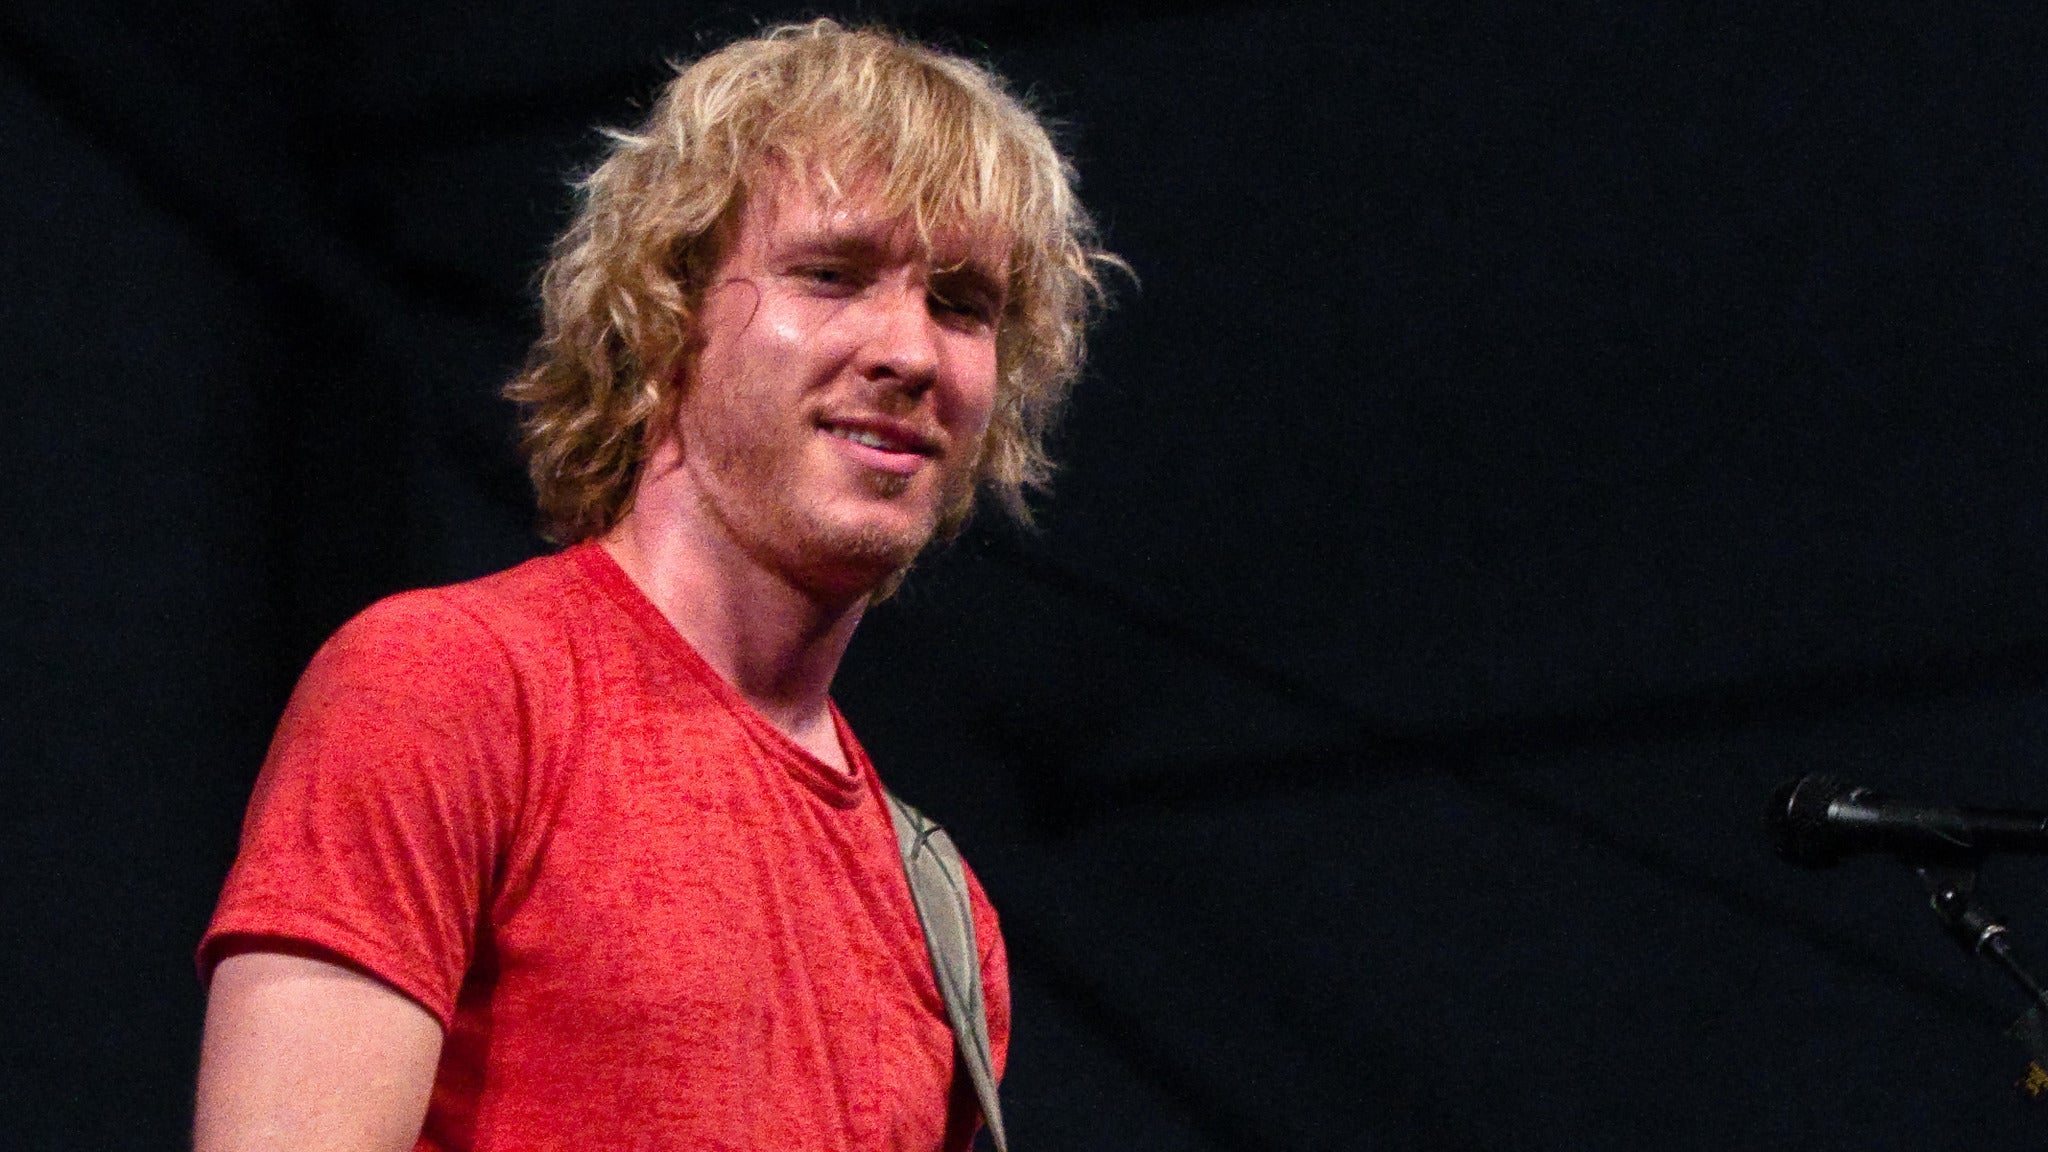 Kenny Wayne Shepherd at Fox Theatre - Redwood City